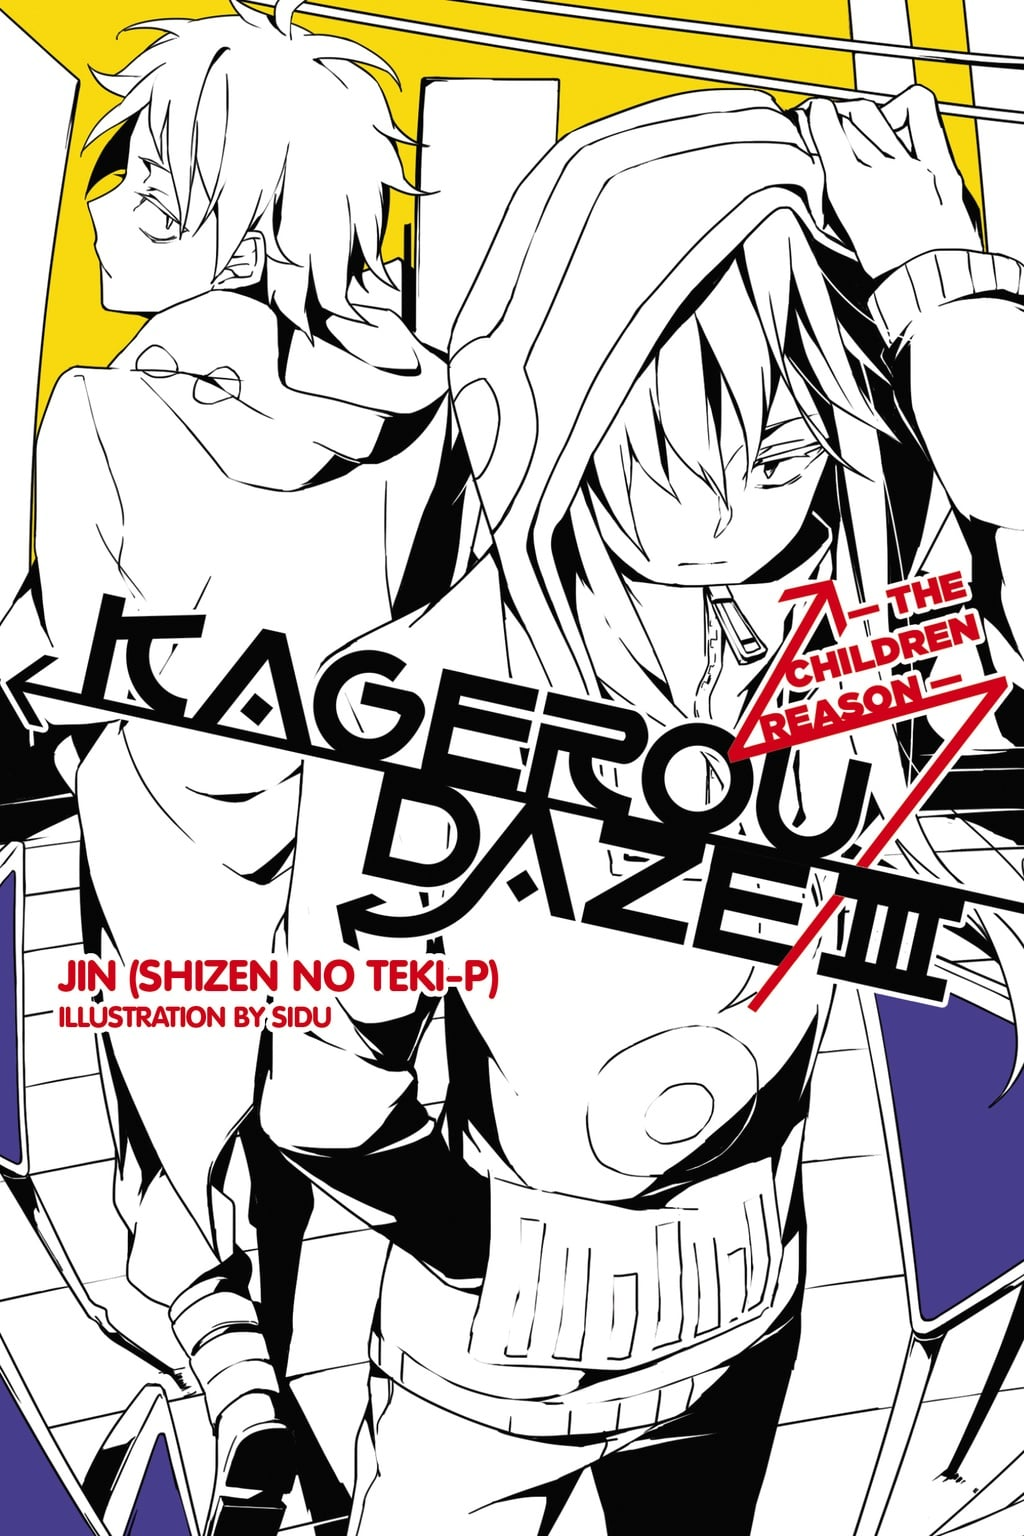 Couverture Kagerou Daze III - The children reason